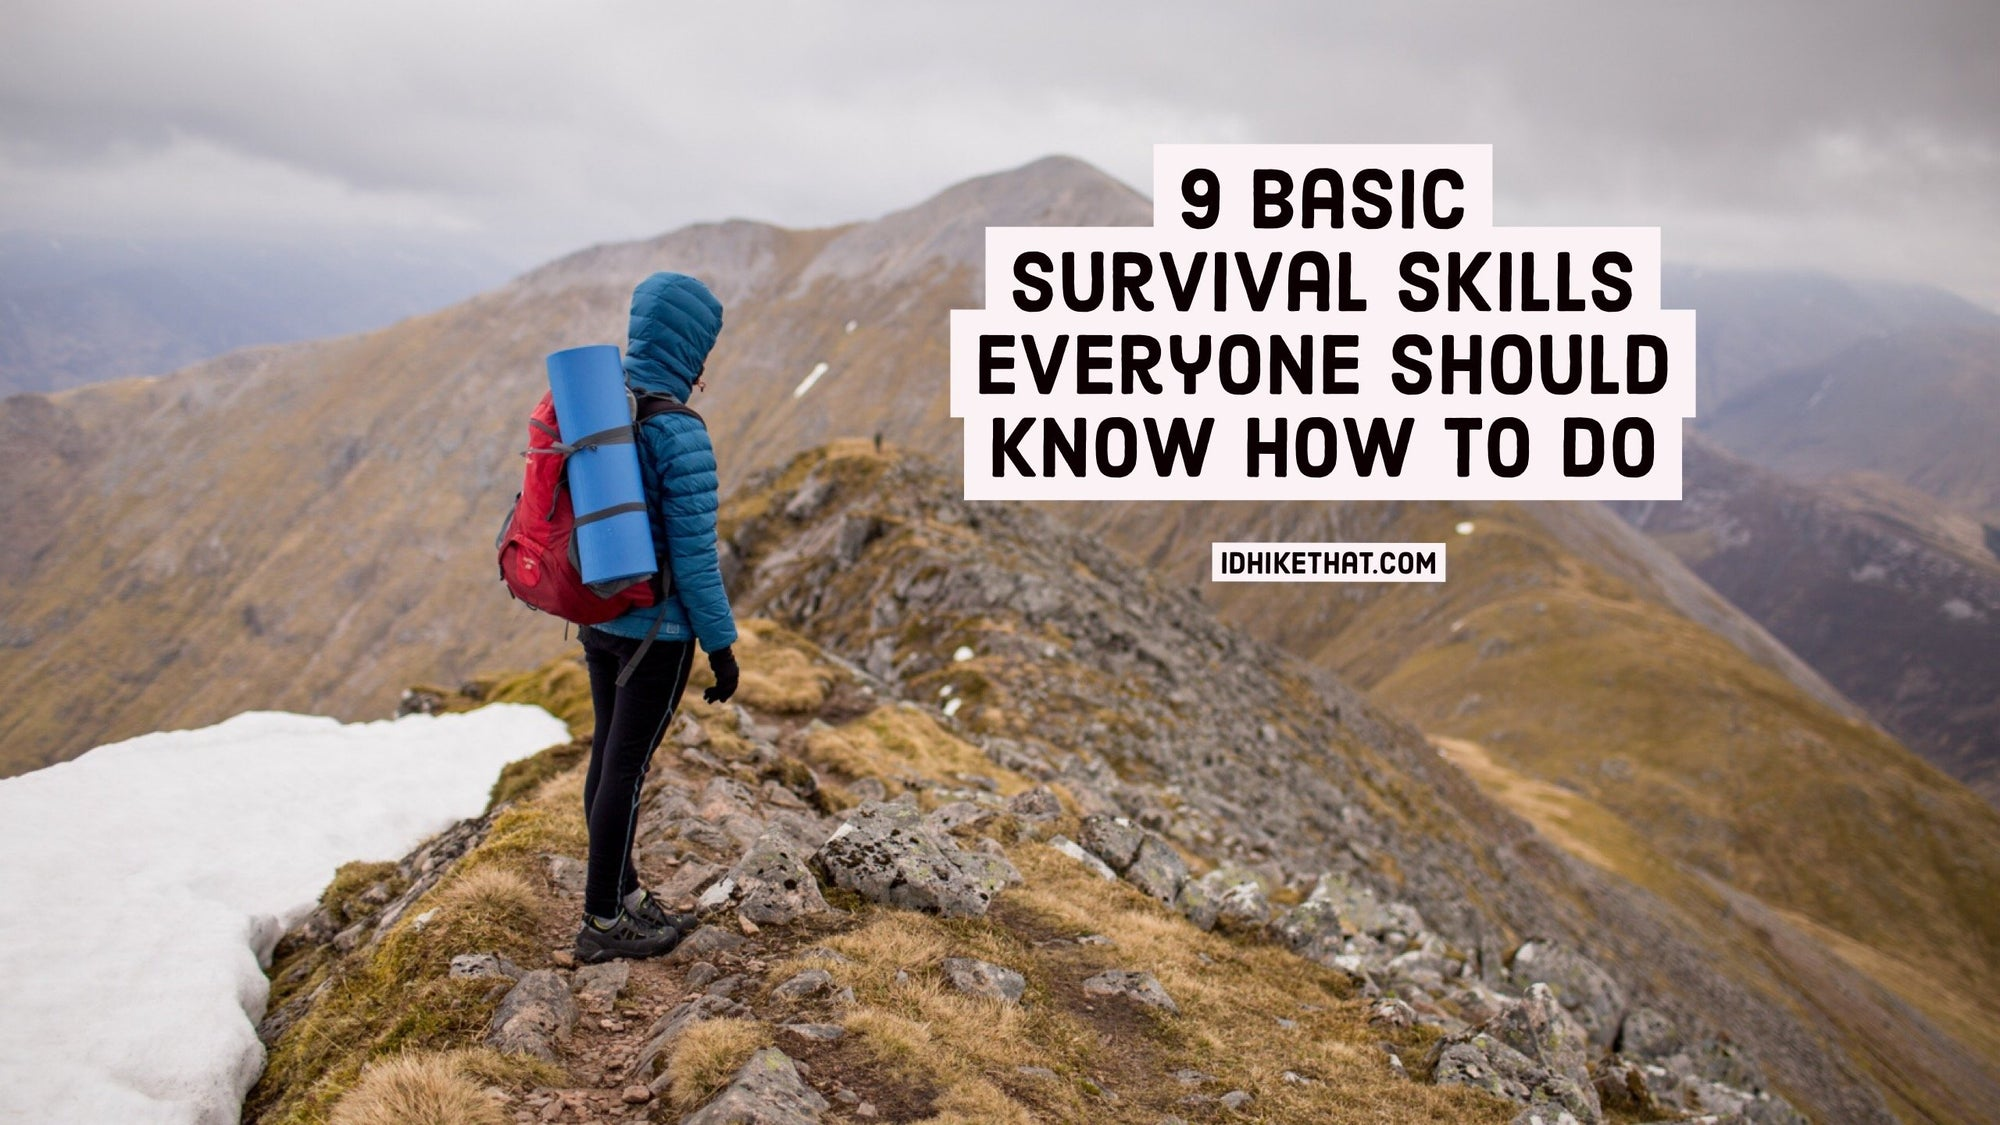 9 Basic Survival skills everyone should know how to do. Visit idhikethat.com and learn the basic skills that could save your life.